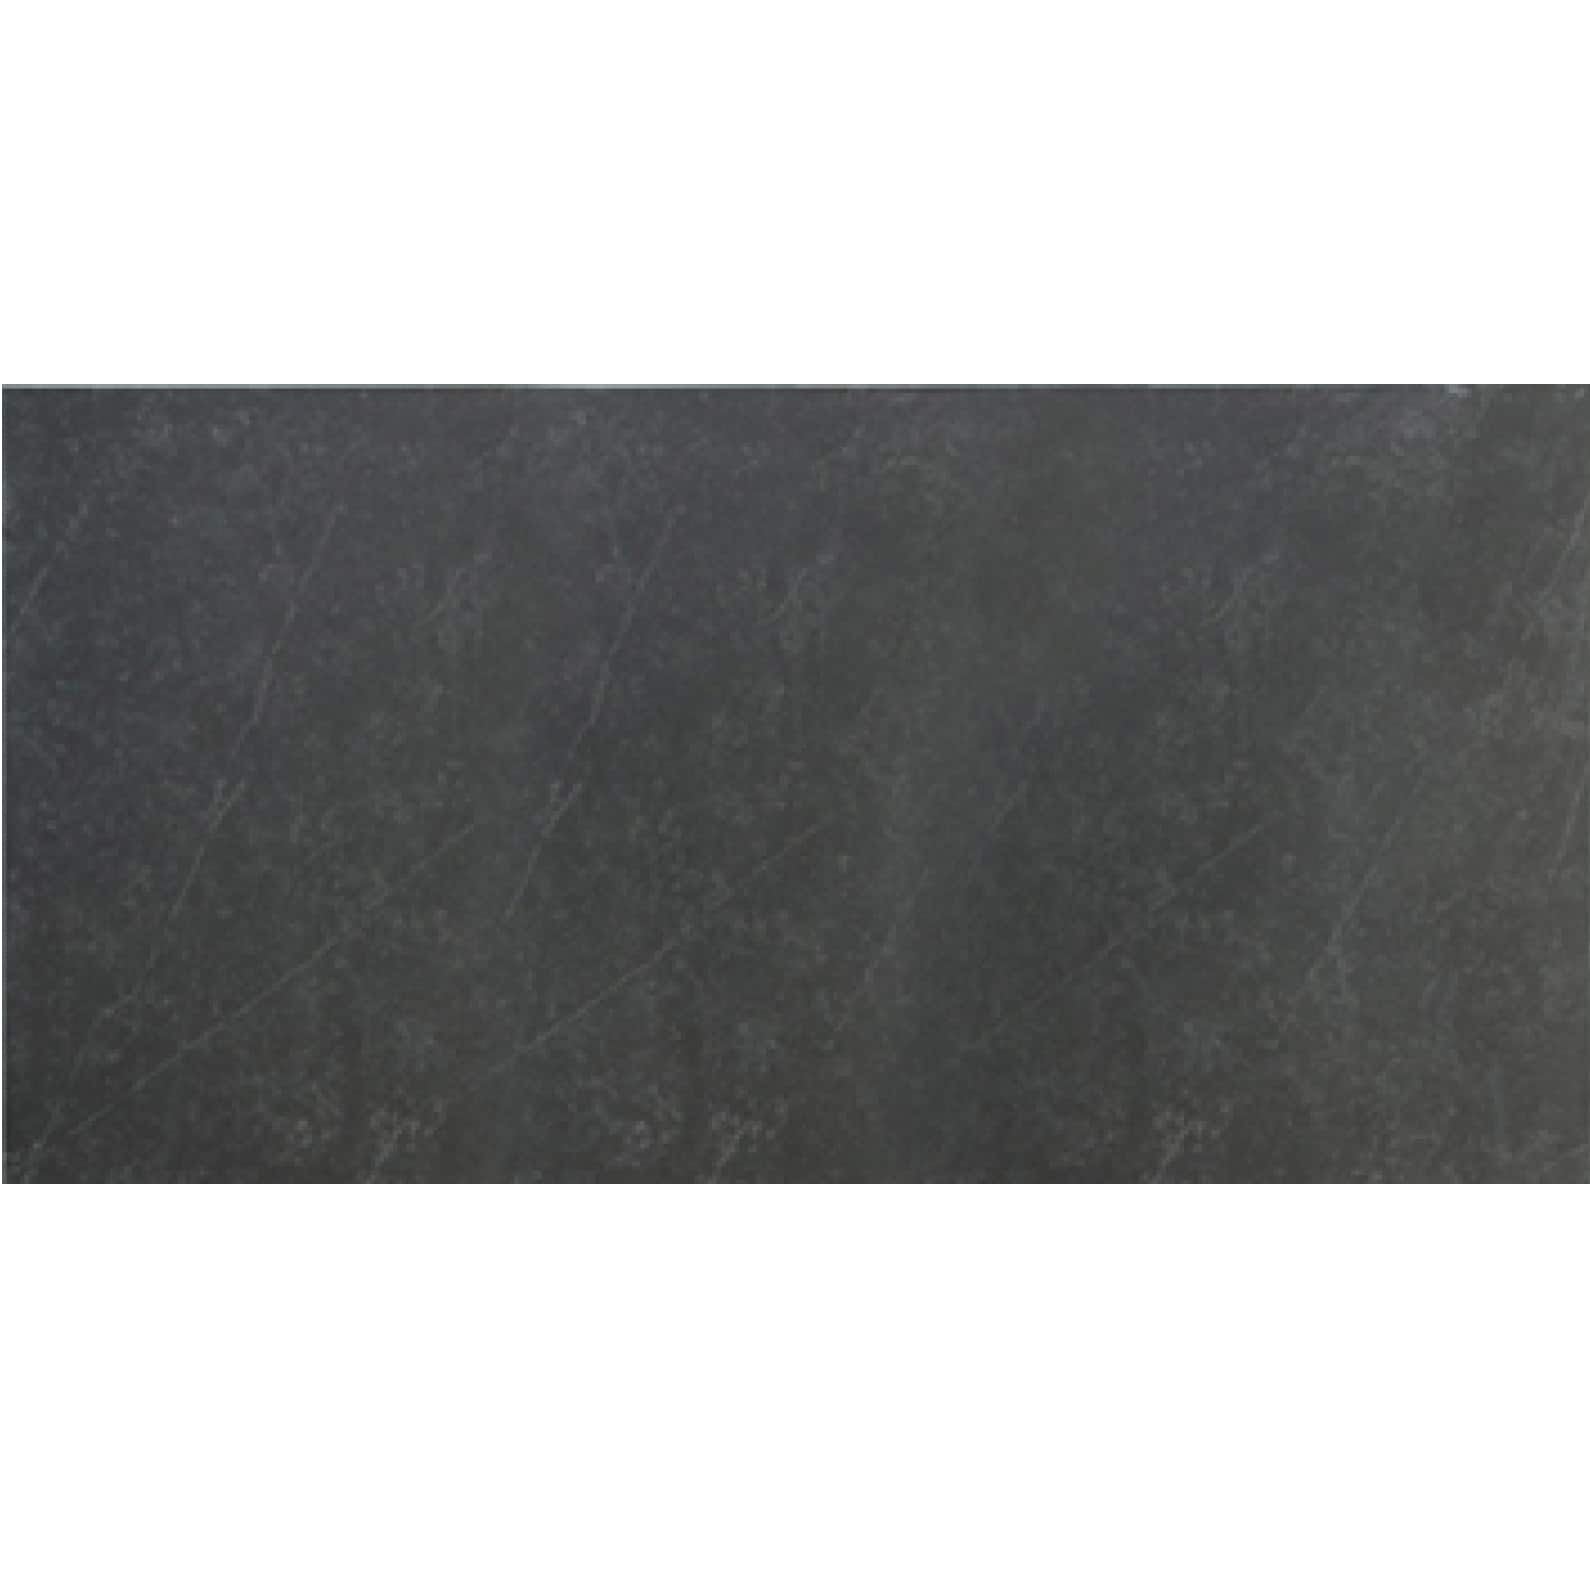 Arredo Quartz Black 400x800 mm